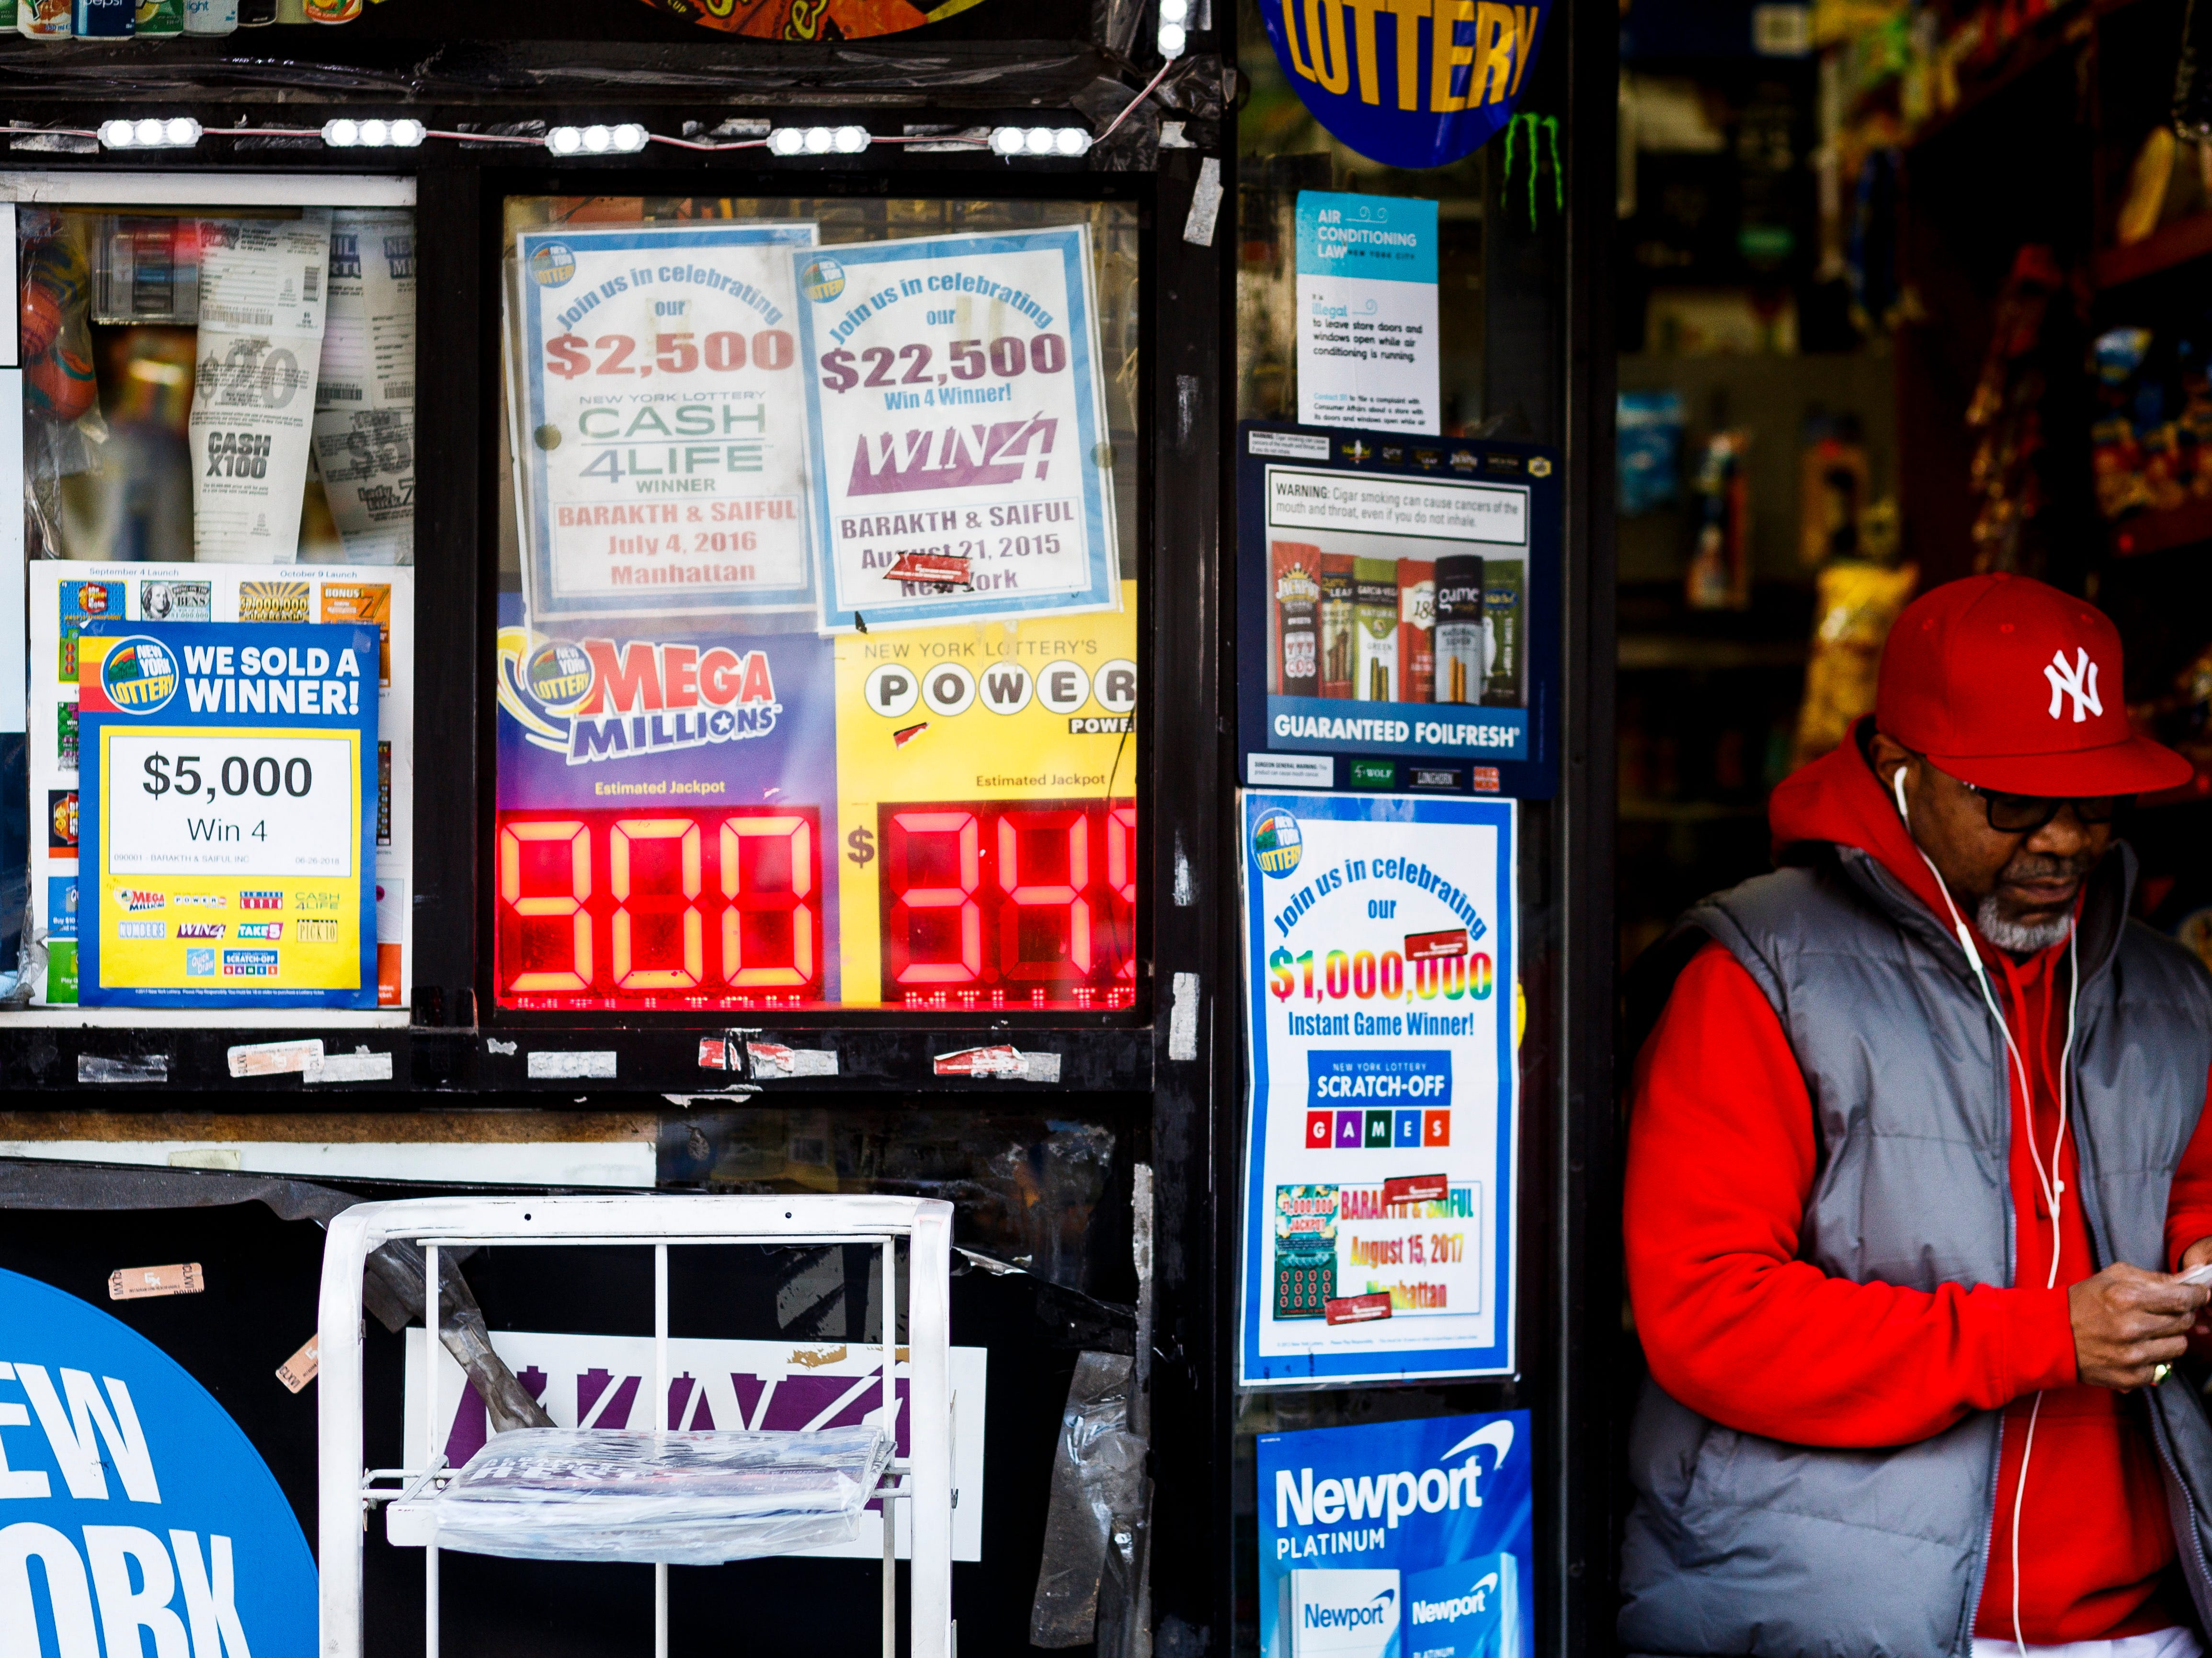 Mega Millions 2018: What are the odds of winning the $1 billion jackpot, and more questions answered